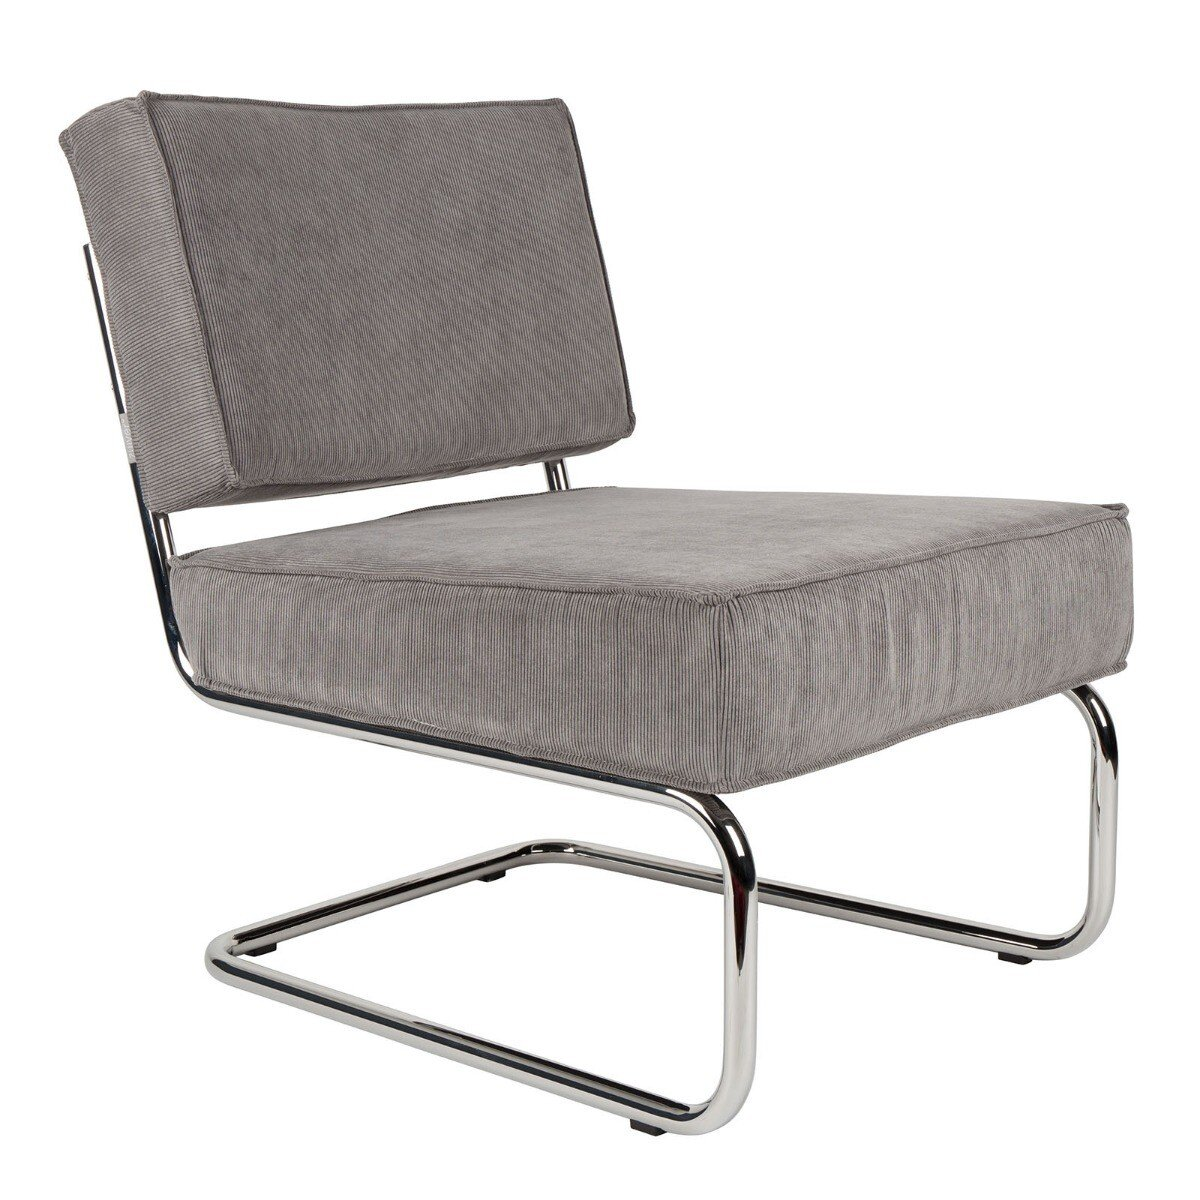 LOUNGE CHAIR RIDGE RIB COOL G